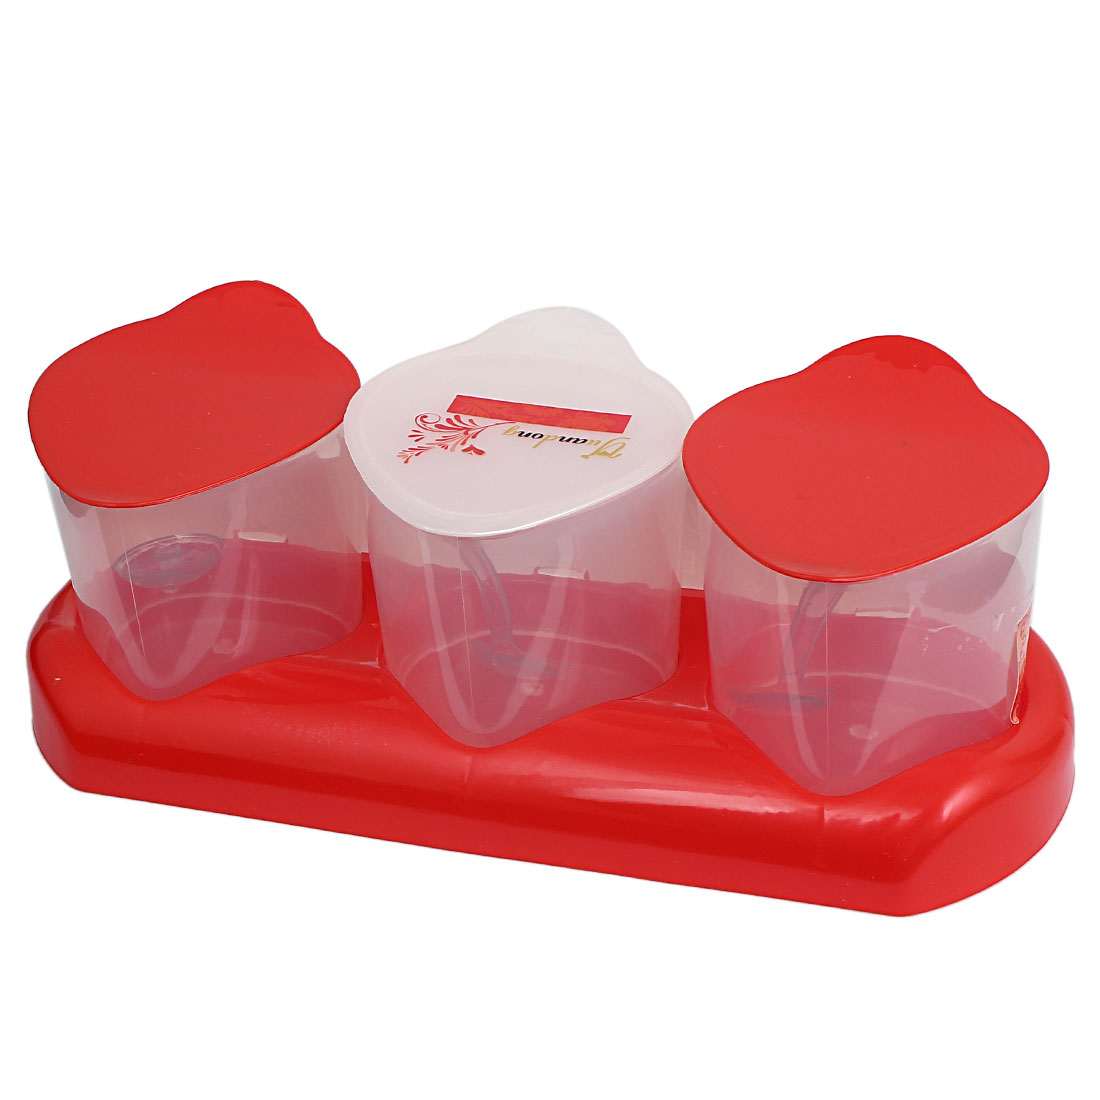 Unique Bargains Funny Strawberry Shape Condiment Holder Dispenser Container Caddy Tray